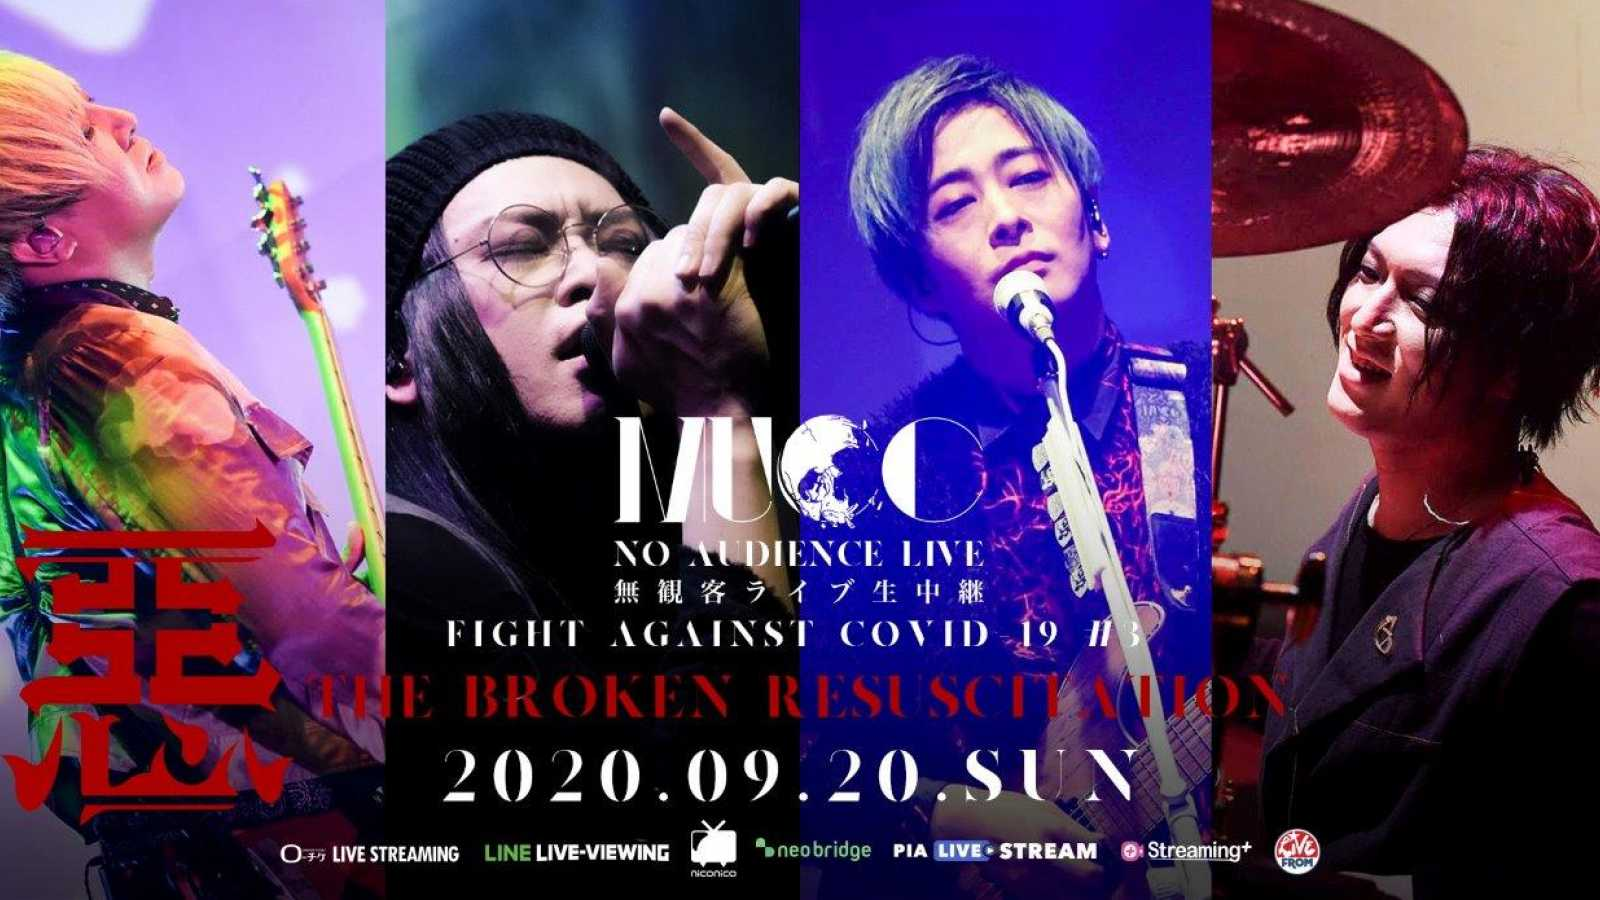 MUCC to Live Stream No-Audience Concert Worldwide © MUCC. All rights reserved.